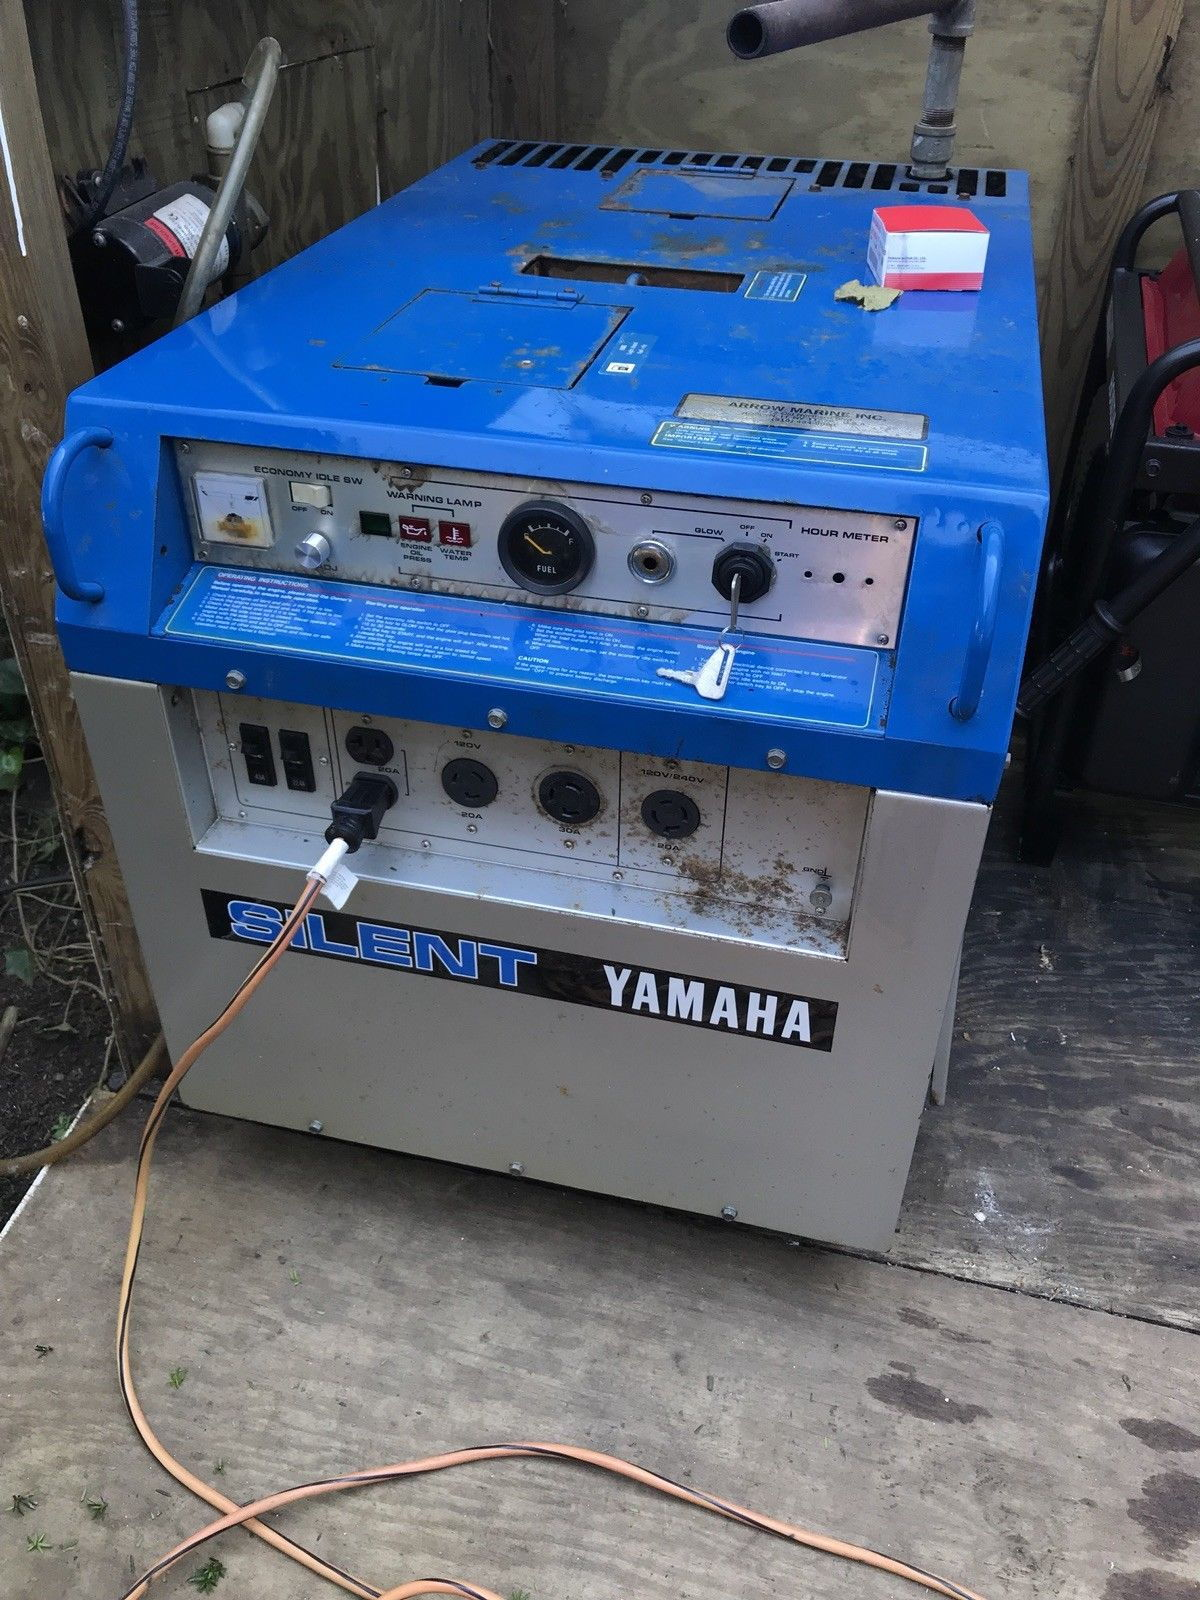 Yamaha quiet diesel generator 5 5kw asking the - How long does a generator last ...